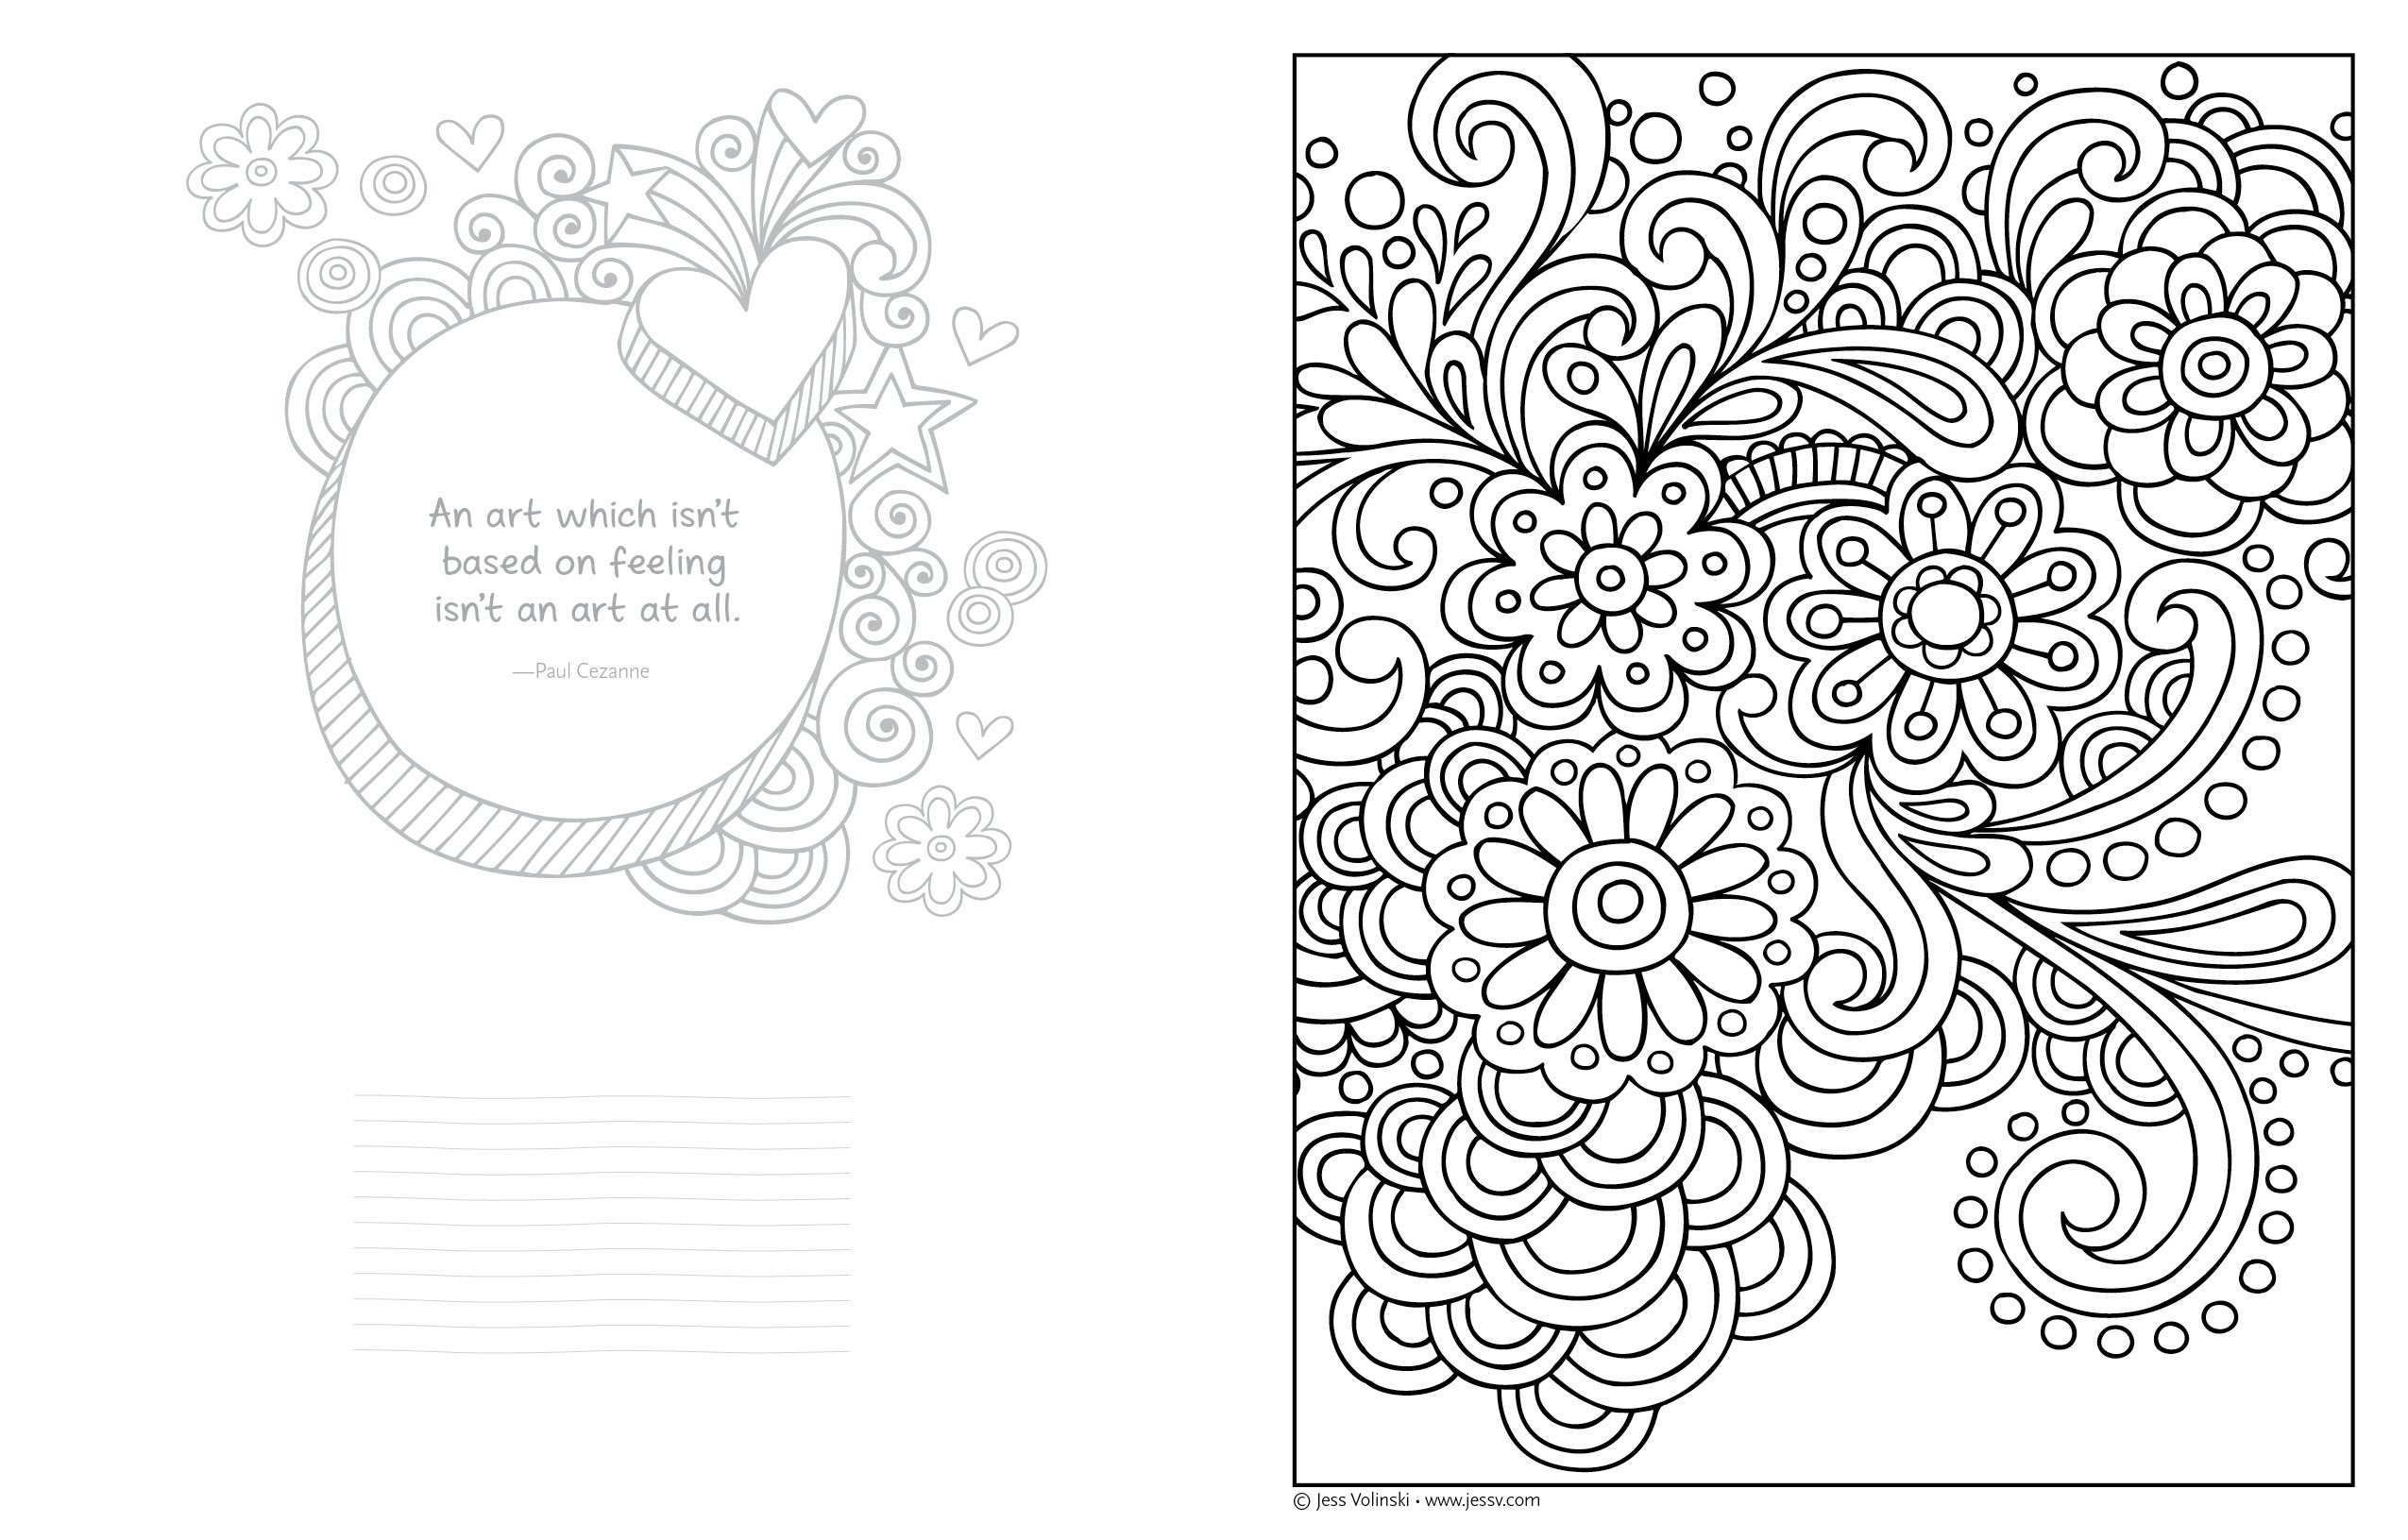 The botany coloring book by paul young - Notebook Doodles Color Swirl Coloring Activity Book Jess Volinski 0023863055543 Amazon Com Books